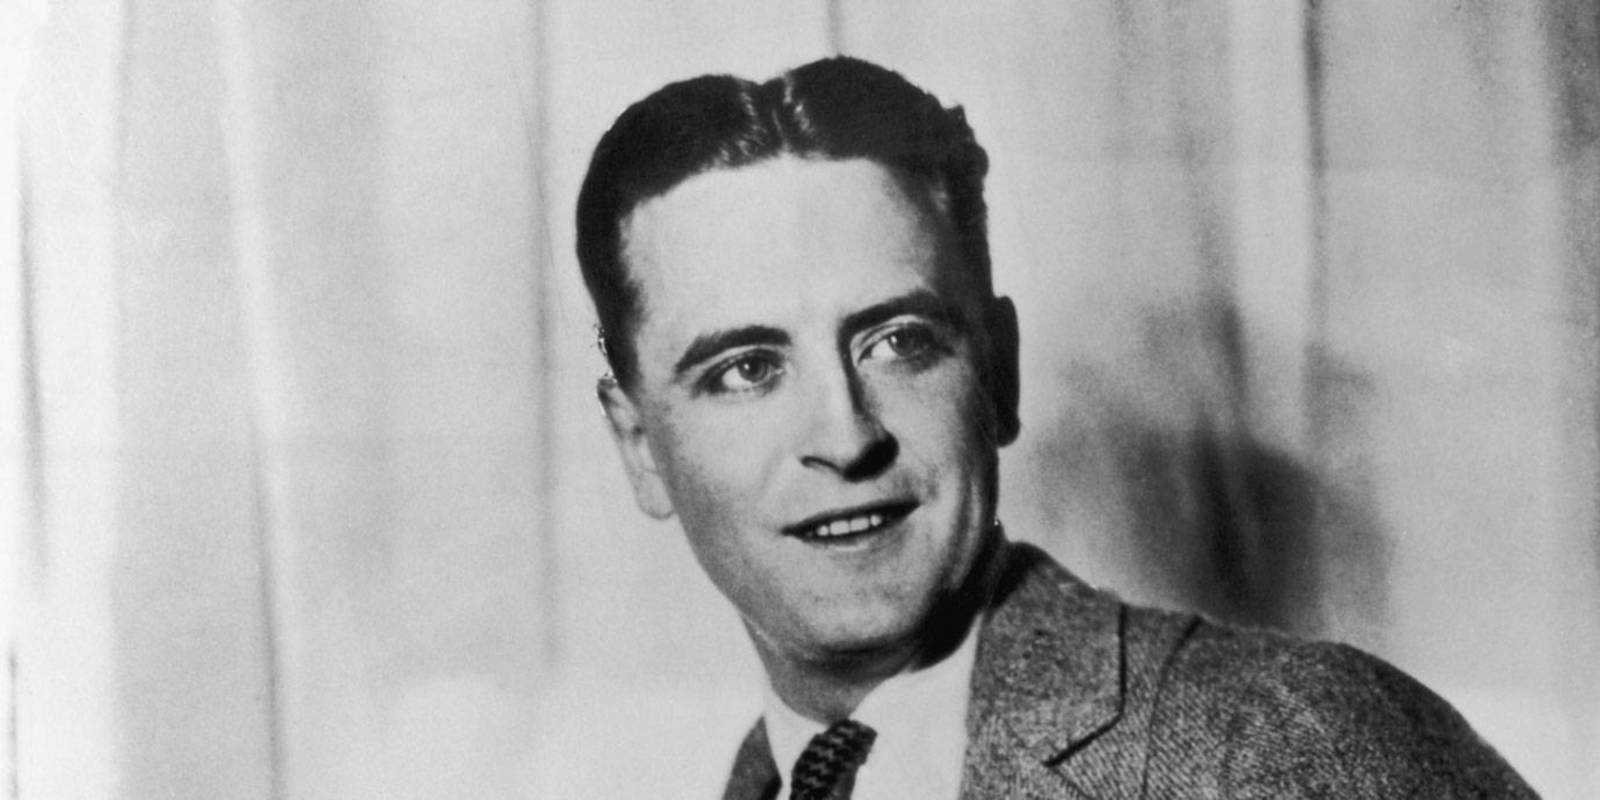 f scott fitzgerald F scott fitzgerald is an american writer, known for works like the great gatsby and tender is the night--along with other novels and short stories here are a few quotes from the life and works of f scott fitzgerald.